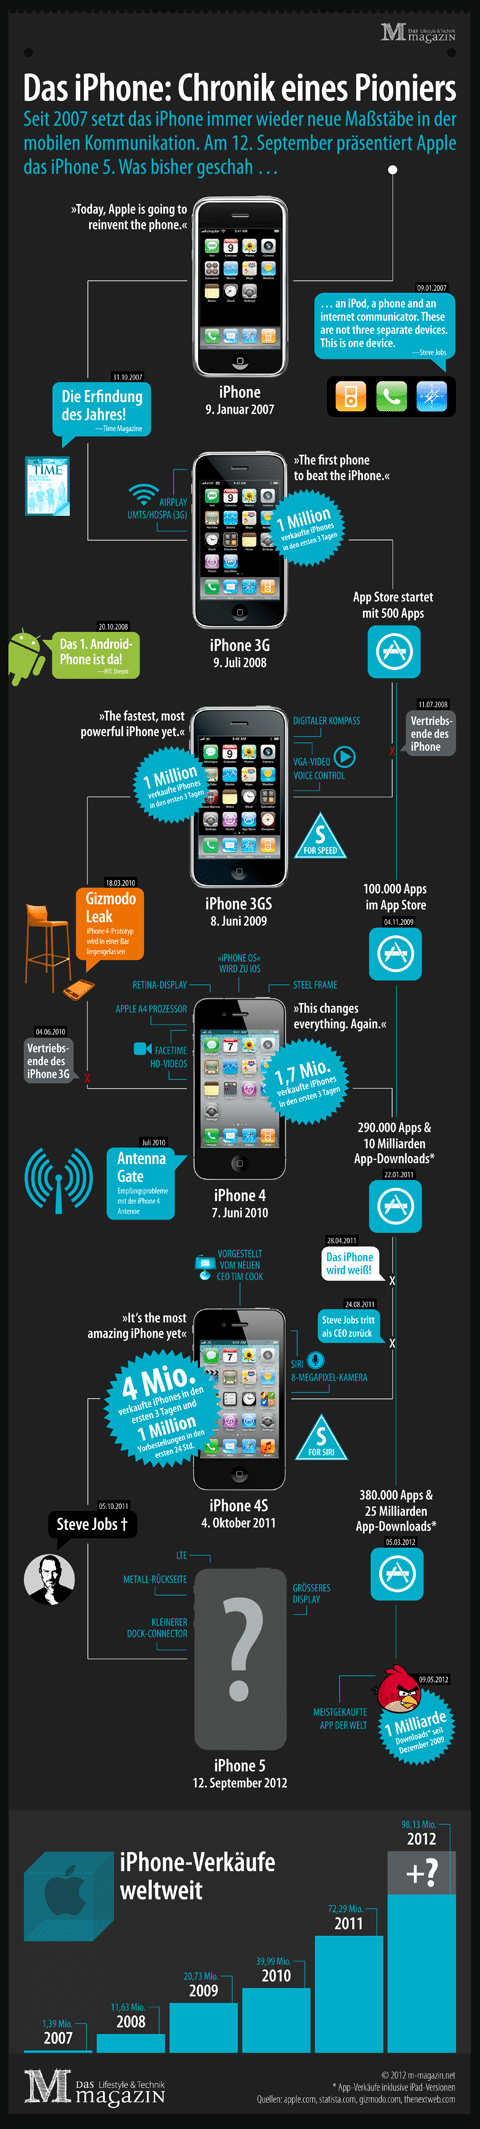 iPhone - Chronik eines Pioniers Infografik